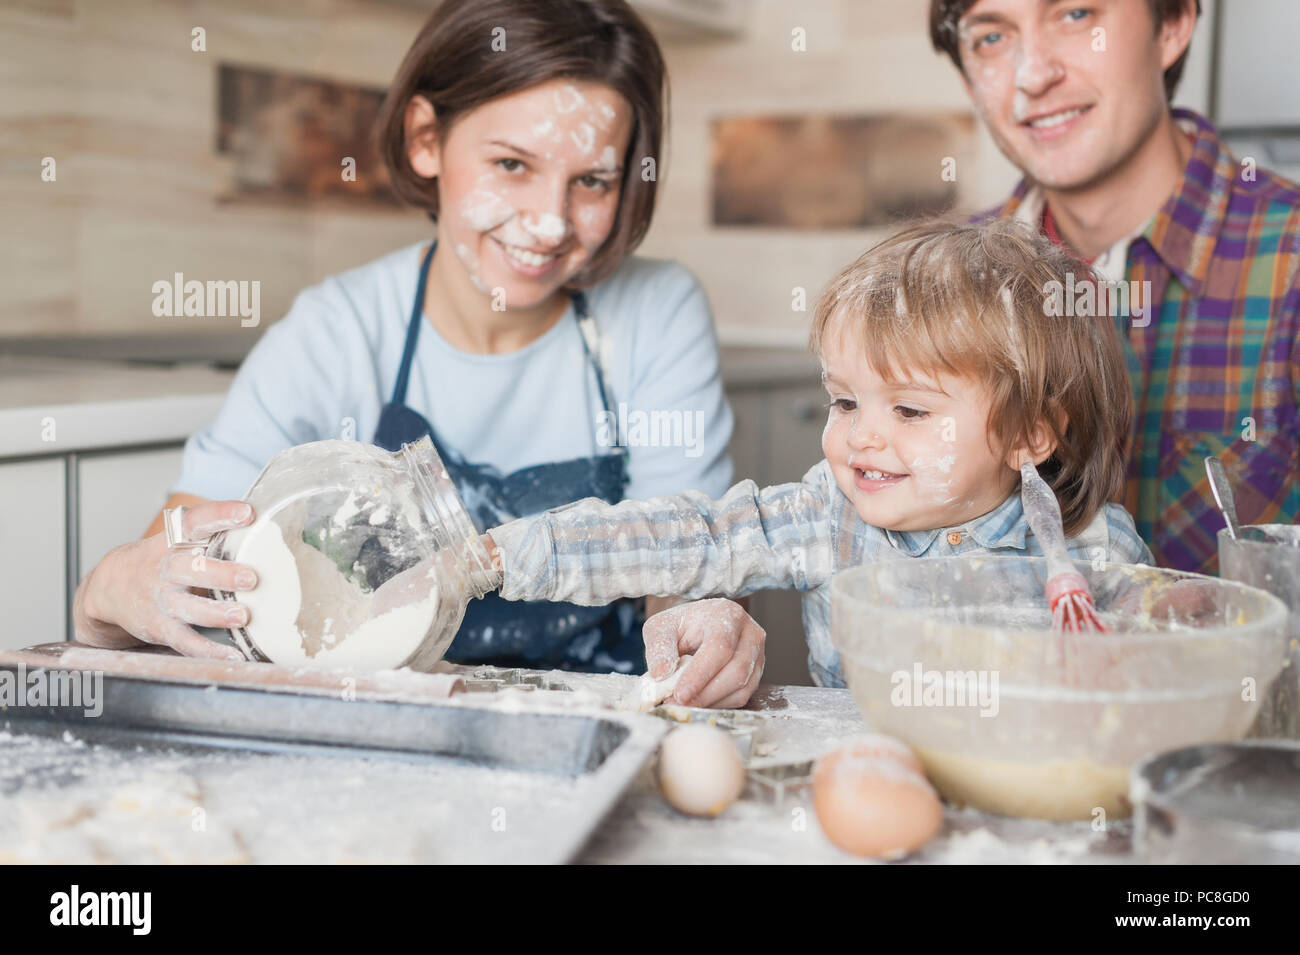 adorable little kid helping his parents with cooking at kitchen - Stock Image